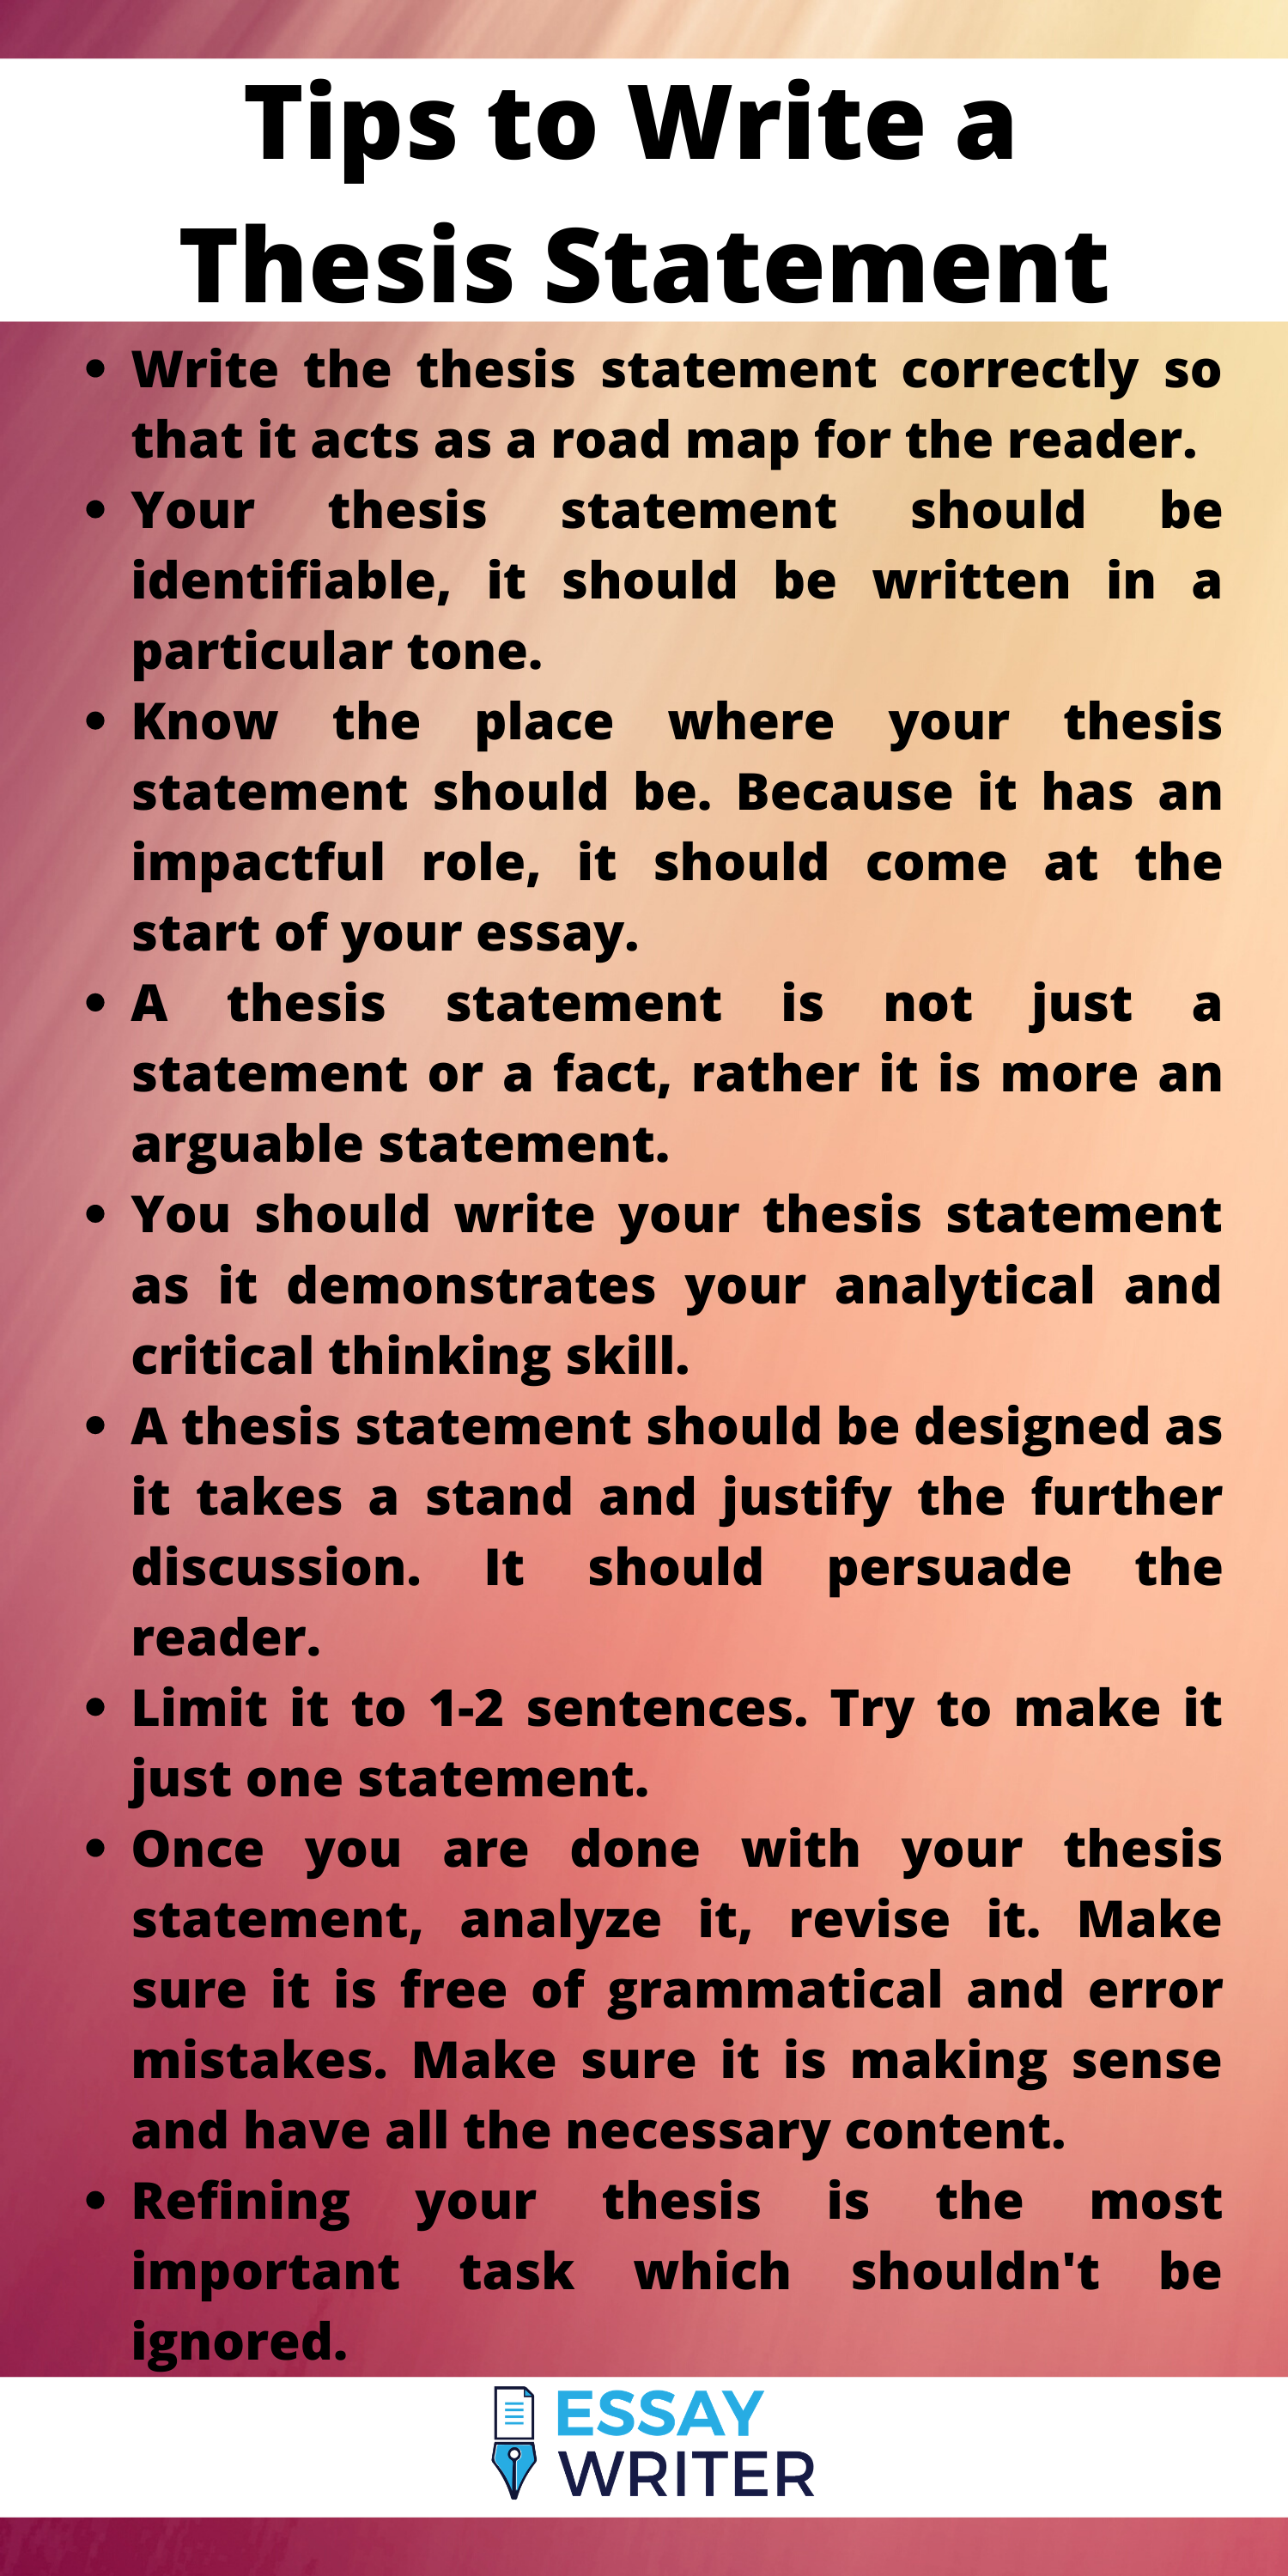 Writing An Effective Thesis Statement Is Very Important